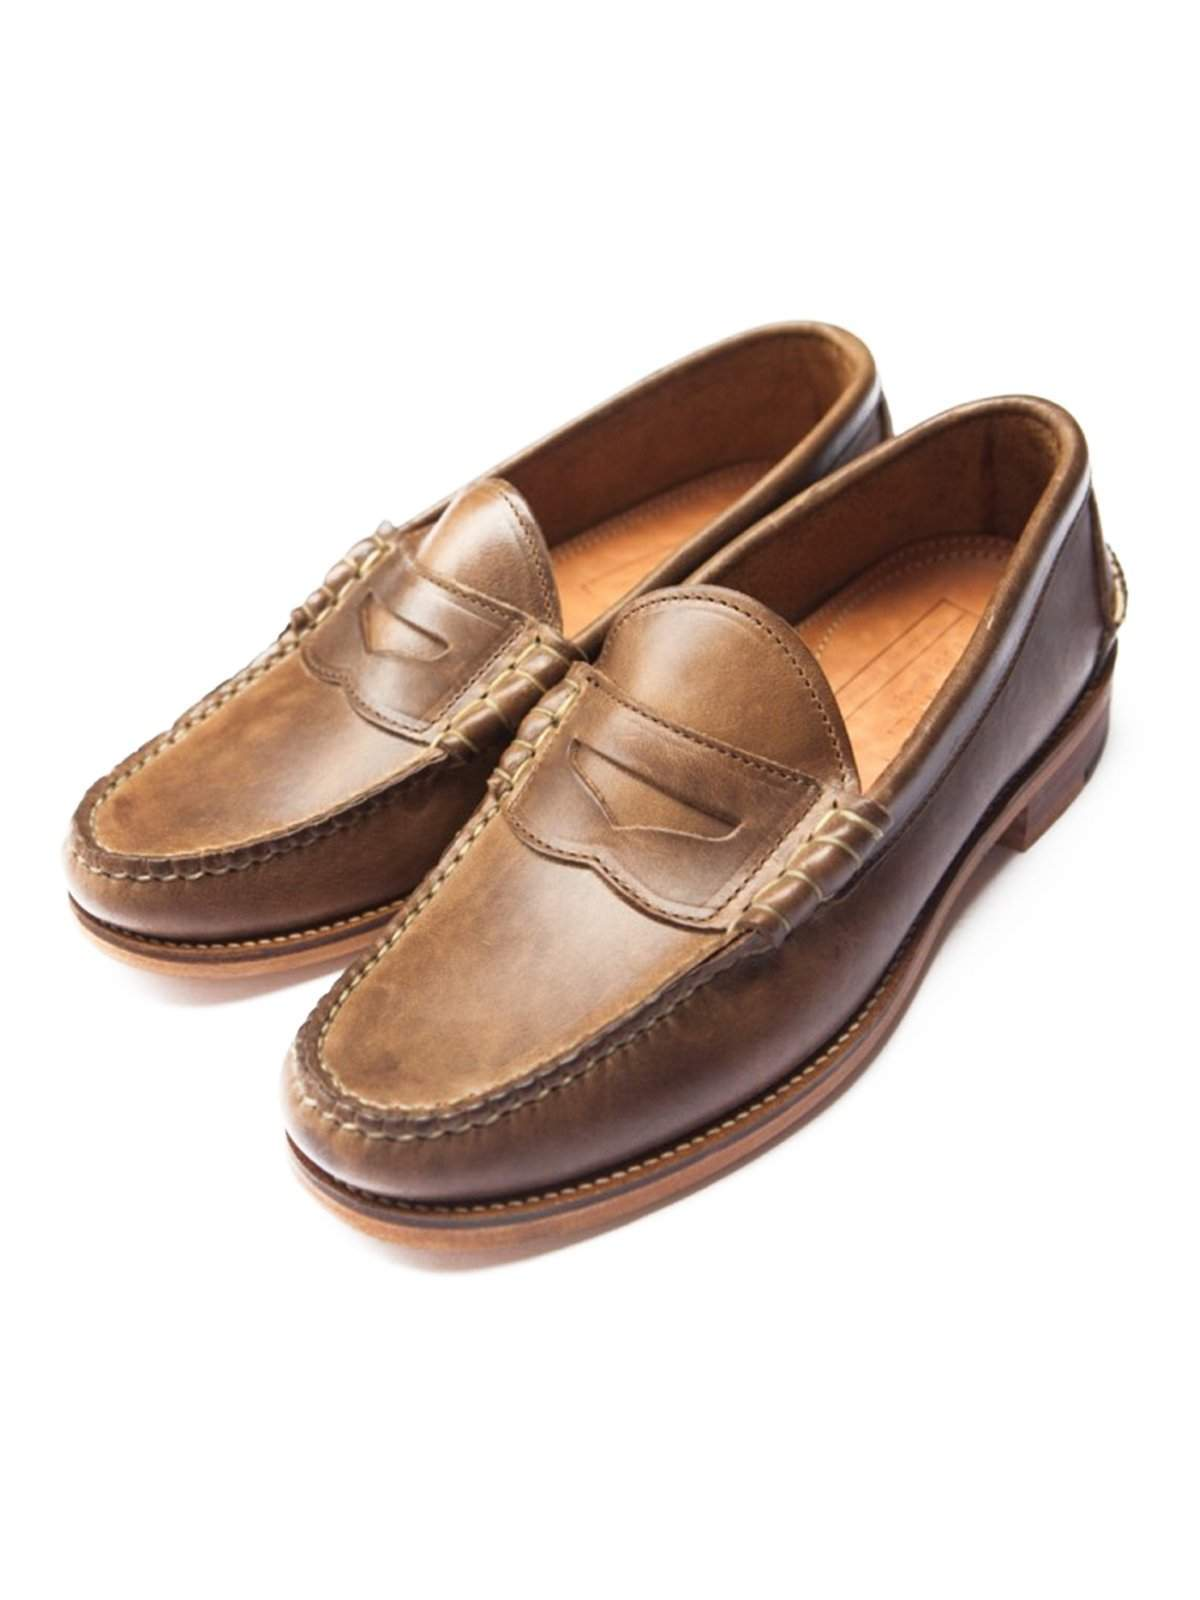 Oakstreet Bootmakers Natural Beefroll Penny Loafer - MORE by Morello Indonesia